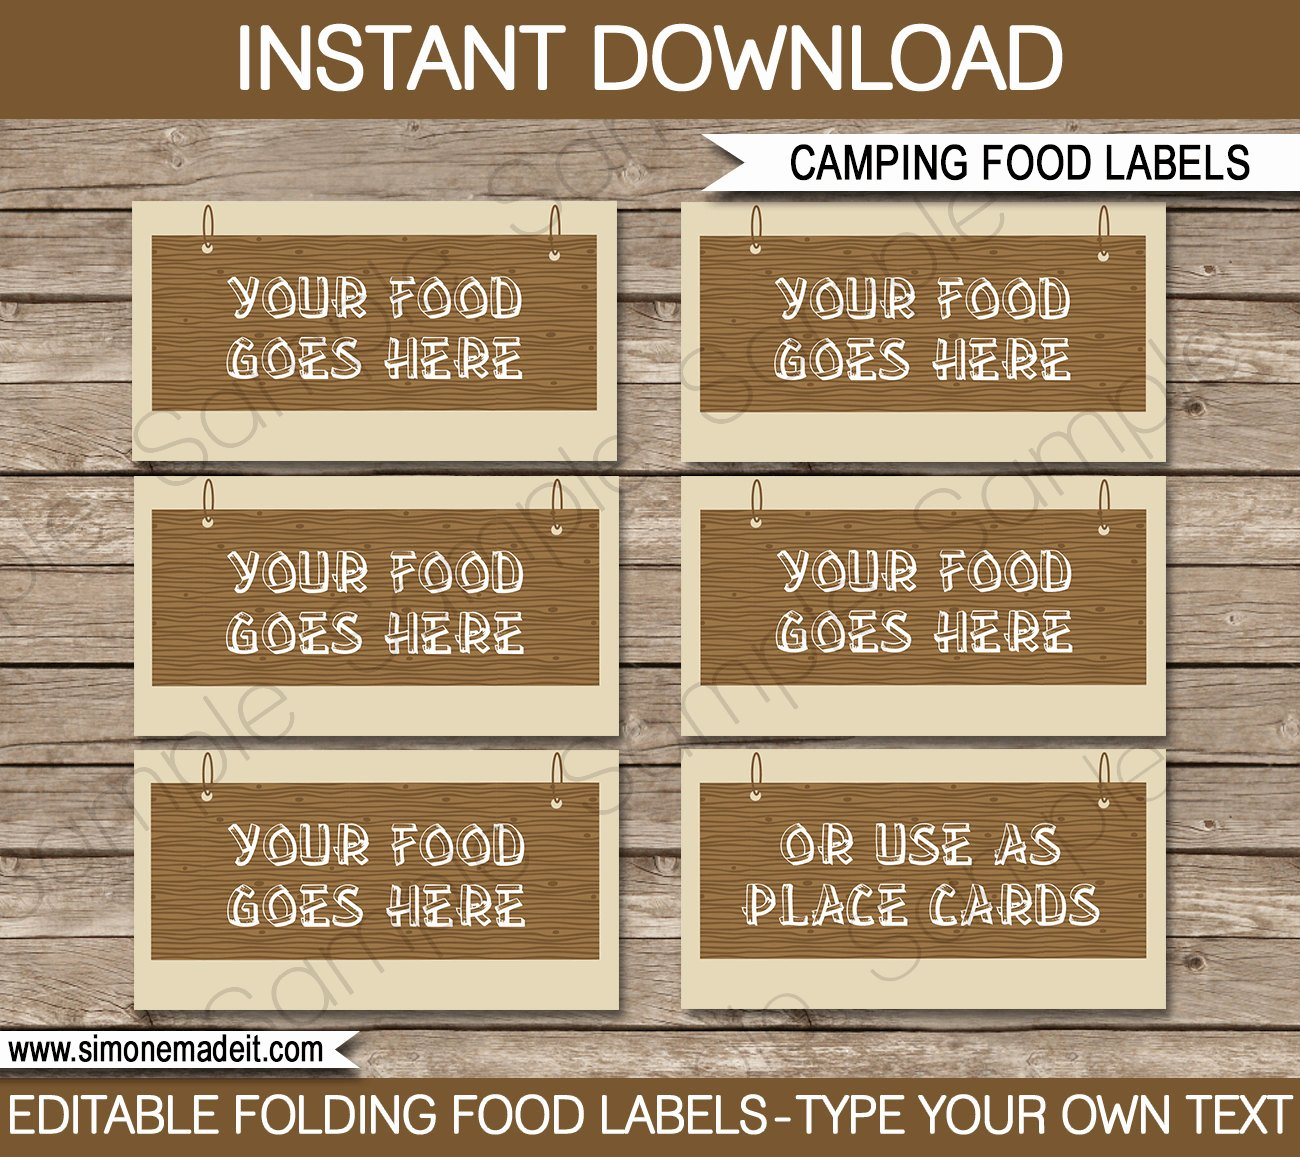 Camping Food Labels Buffet Tags Tent Cards by Simonemadeit